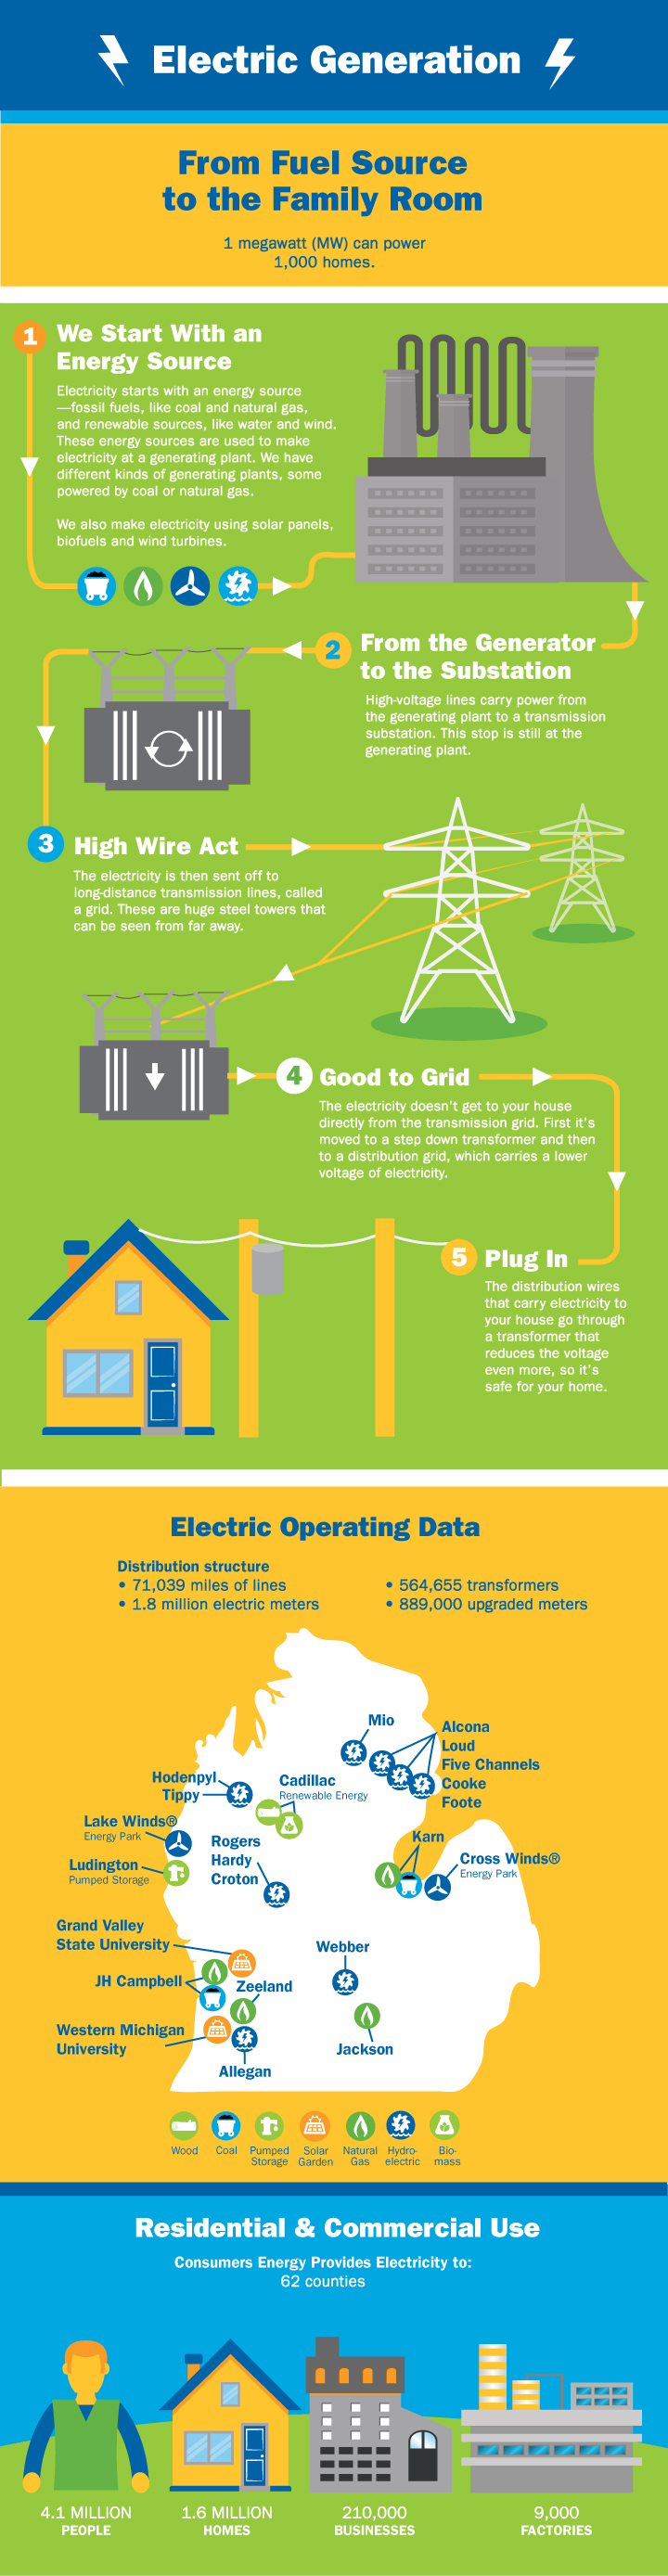 Electricity Consumers Energy Diagram Of How Generates From Coal We All Rely On A Lot Most People Dont Think About It Much Thoughuntil You Have Like When Your Phone Needs Charging And Cant